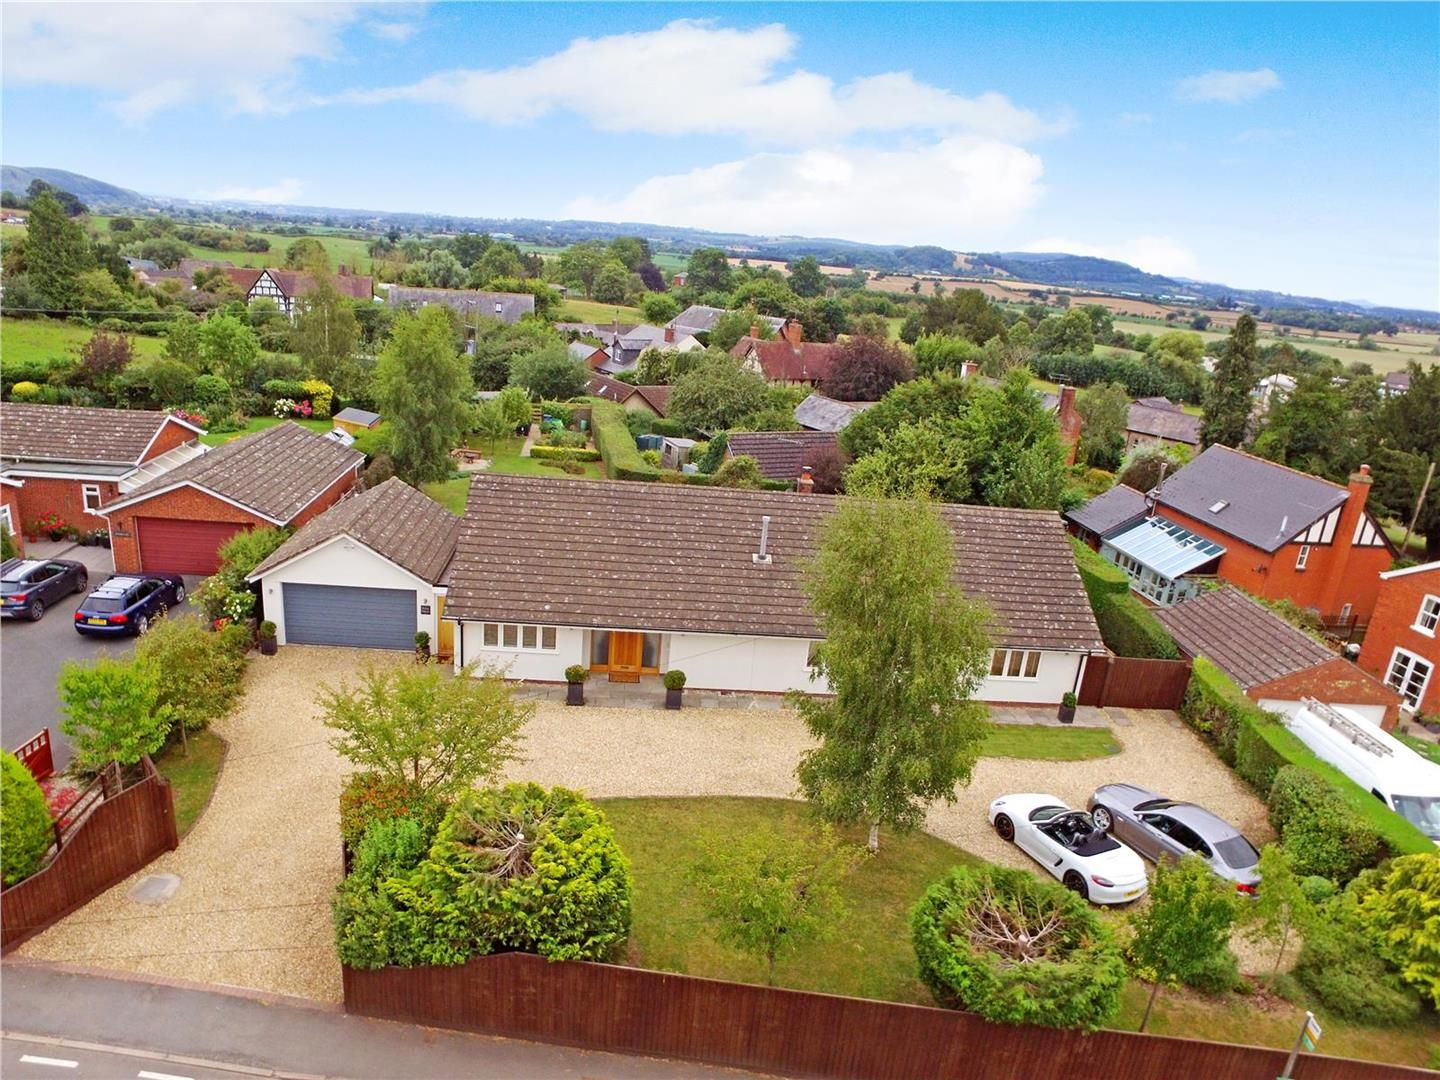 4 bed detached-bungalow for sale in Lugwardine, HR1